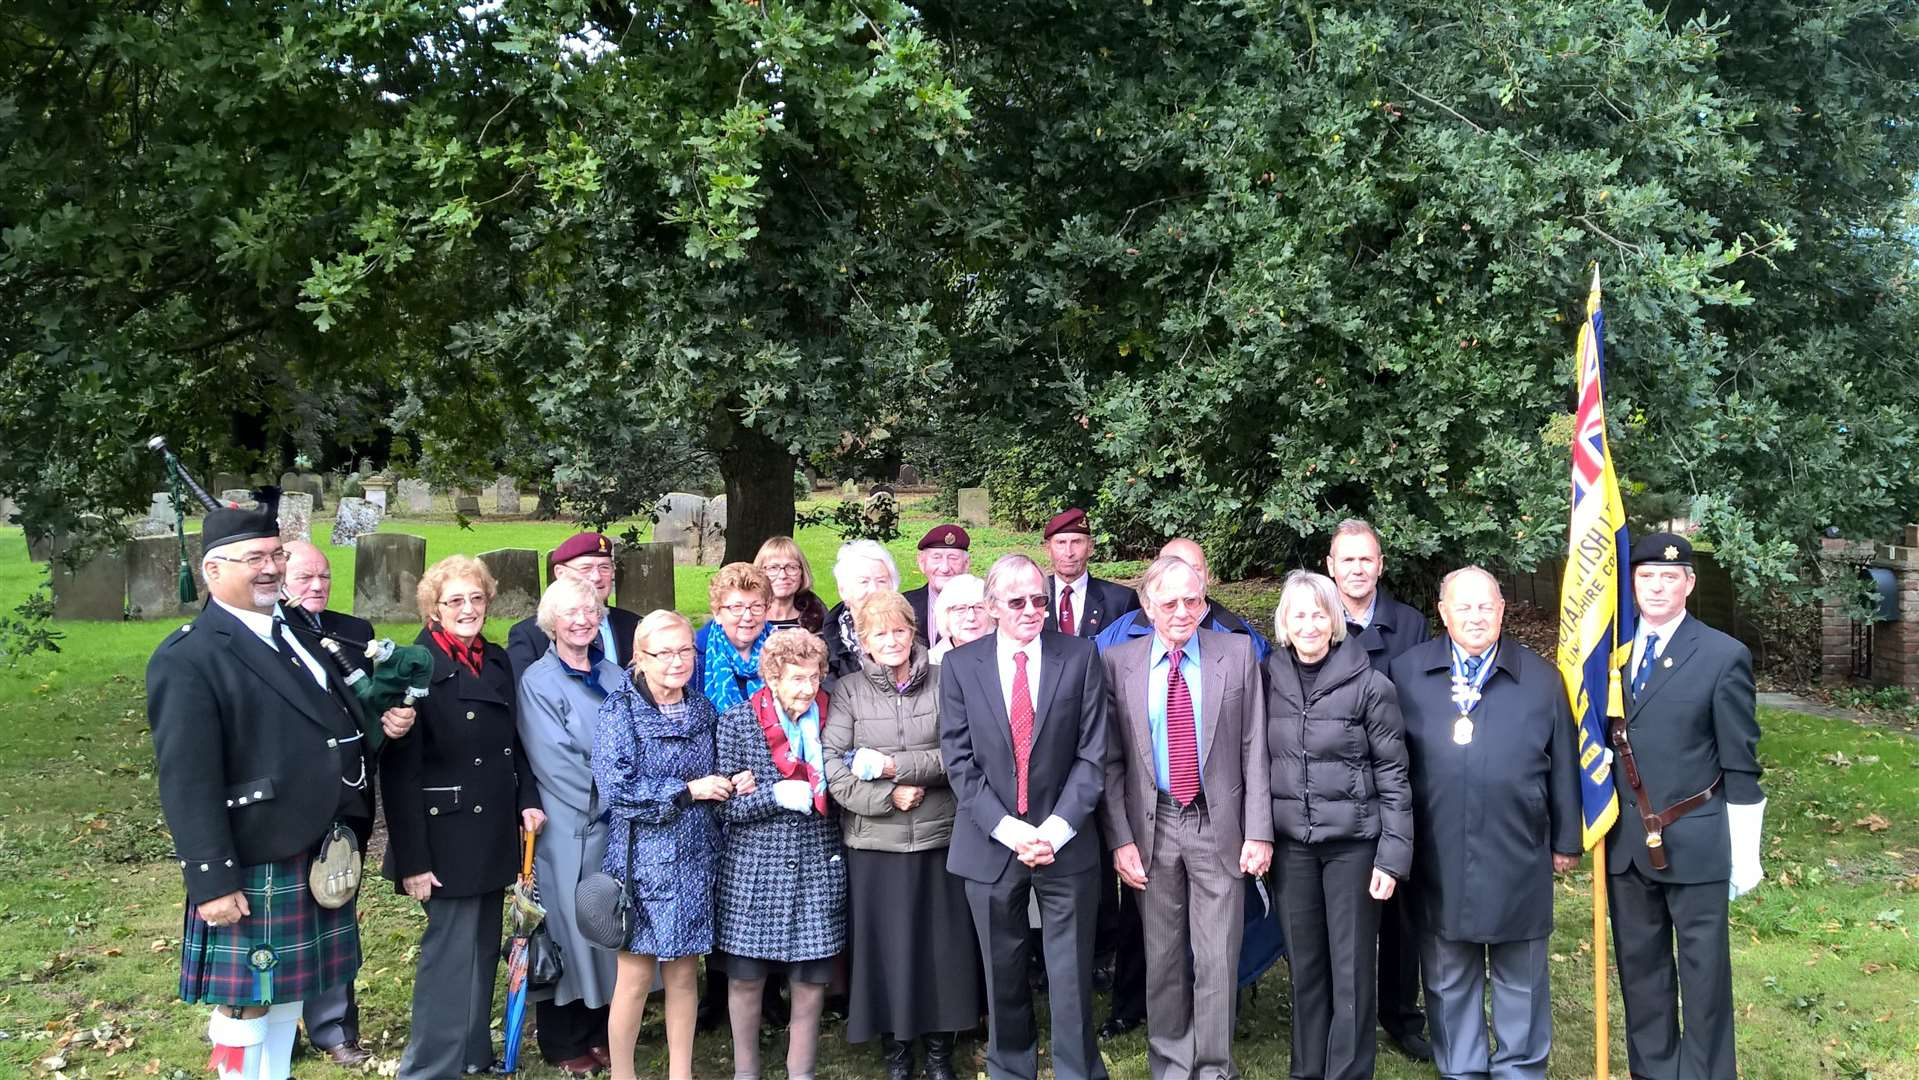 People who gathered for the parade and service at Donington church. (4506957)